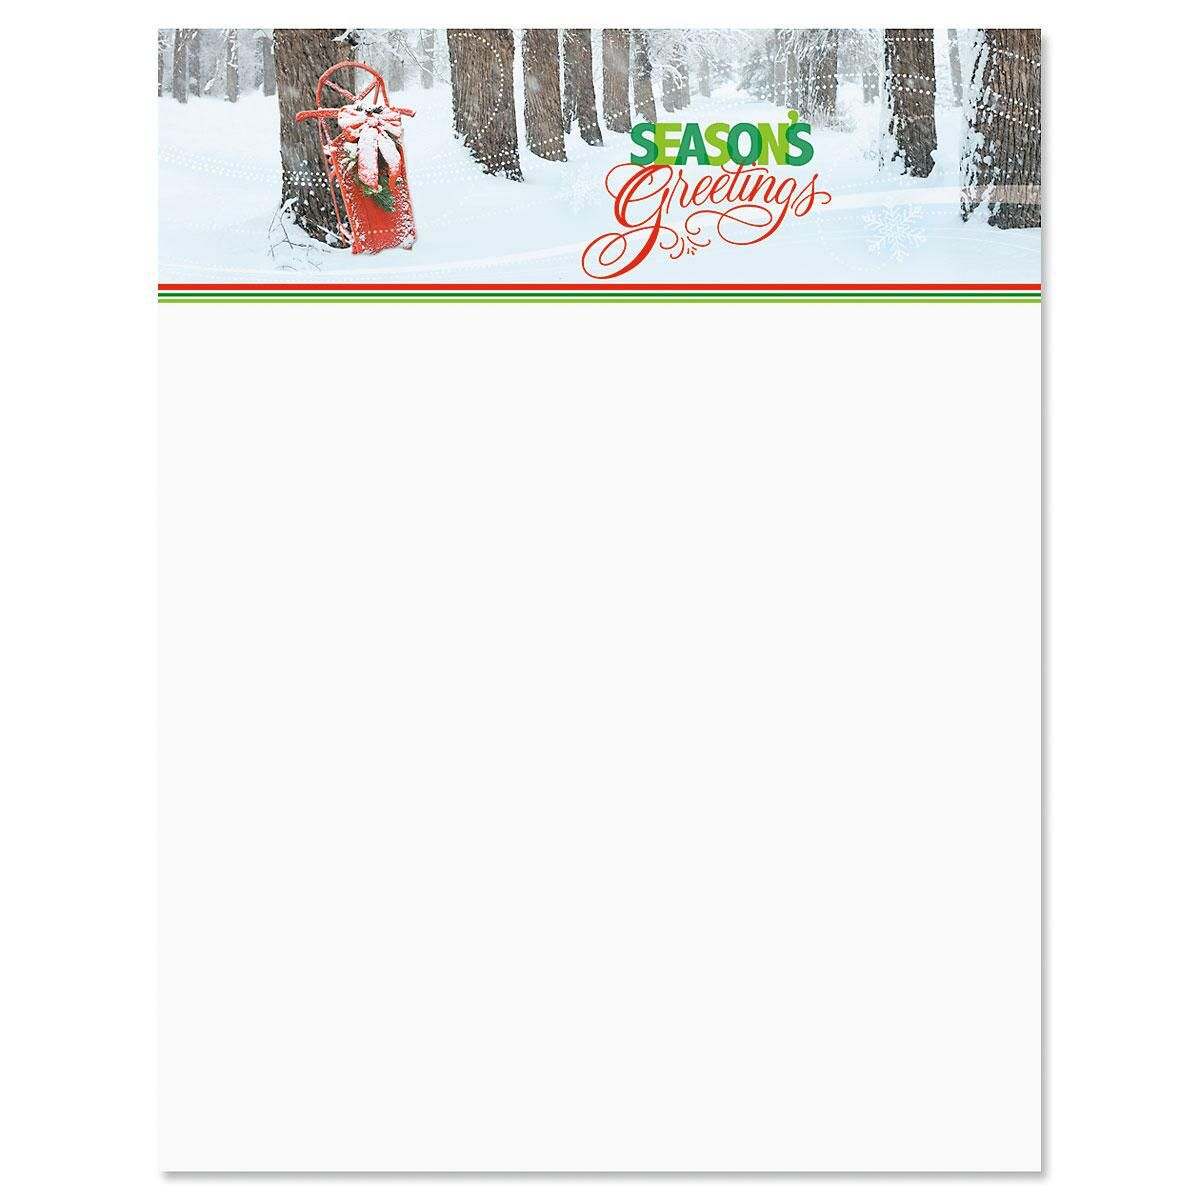 Sled in Trees Letter Papers